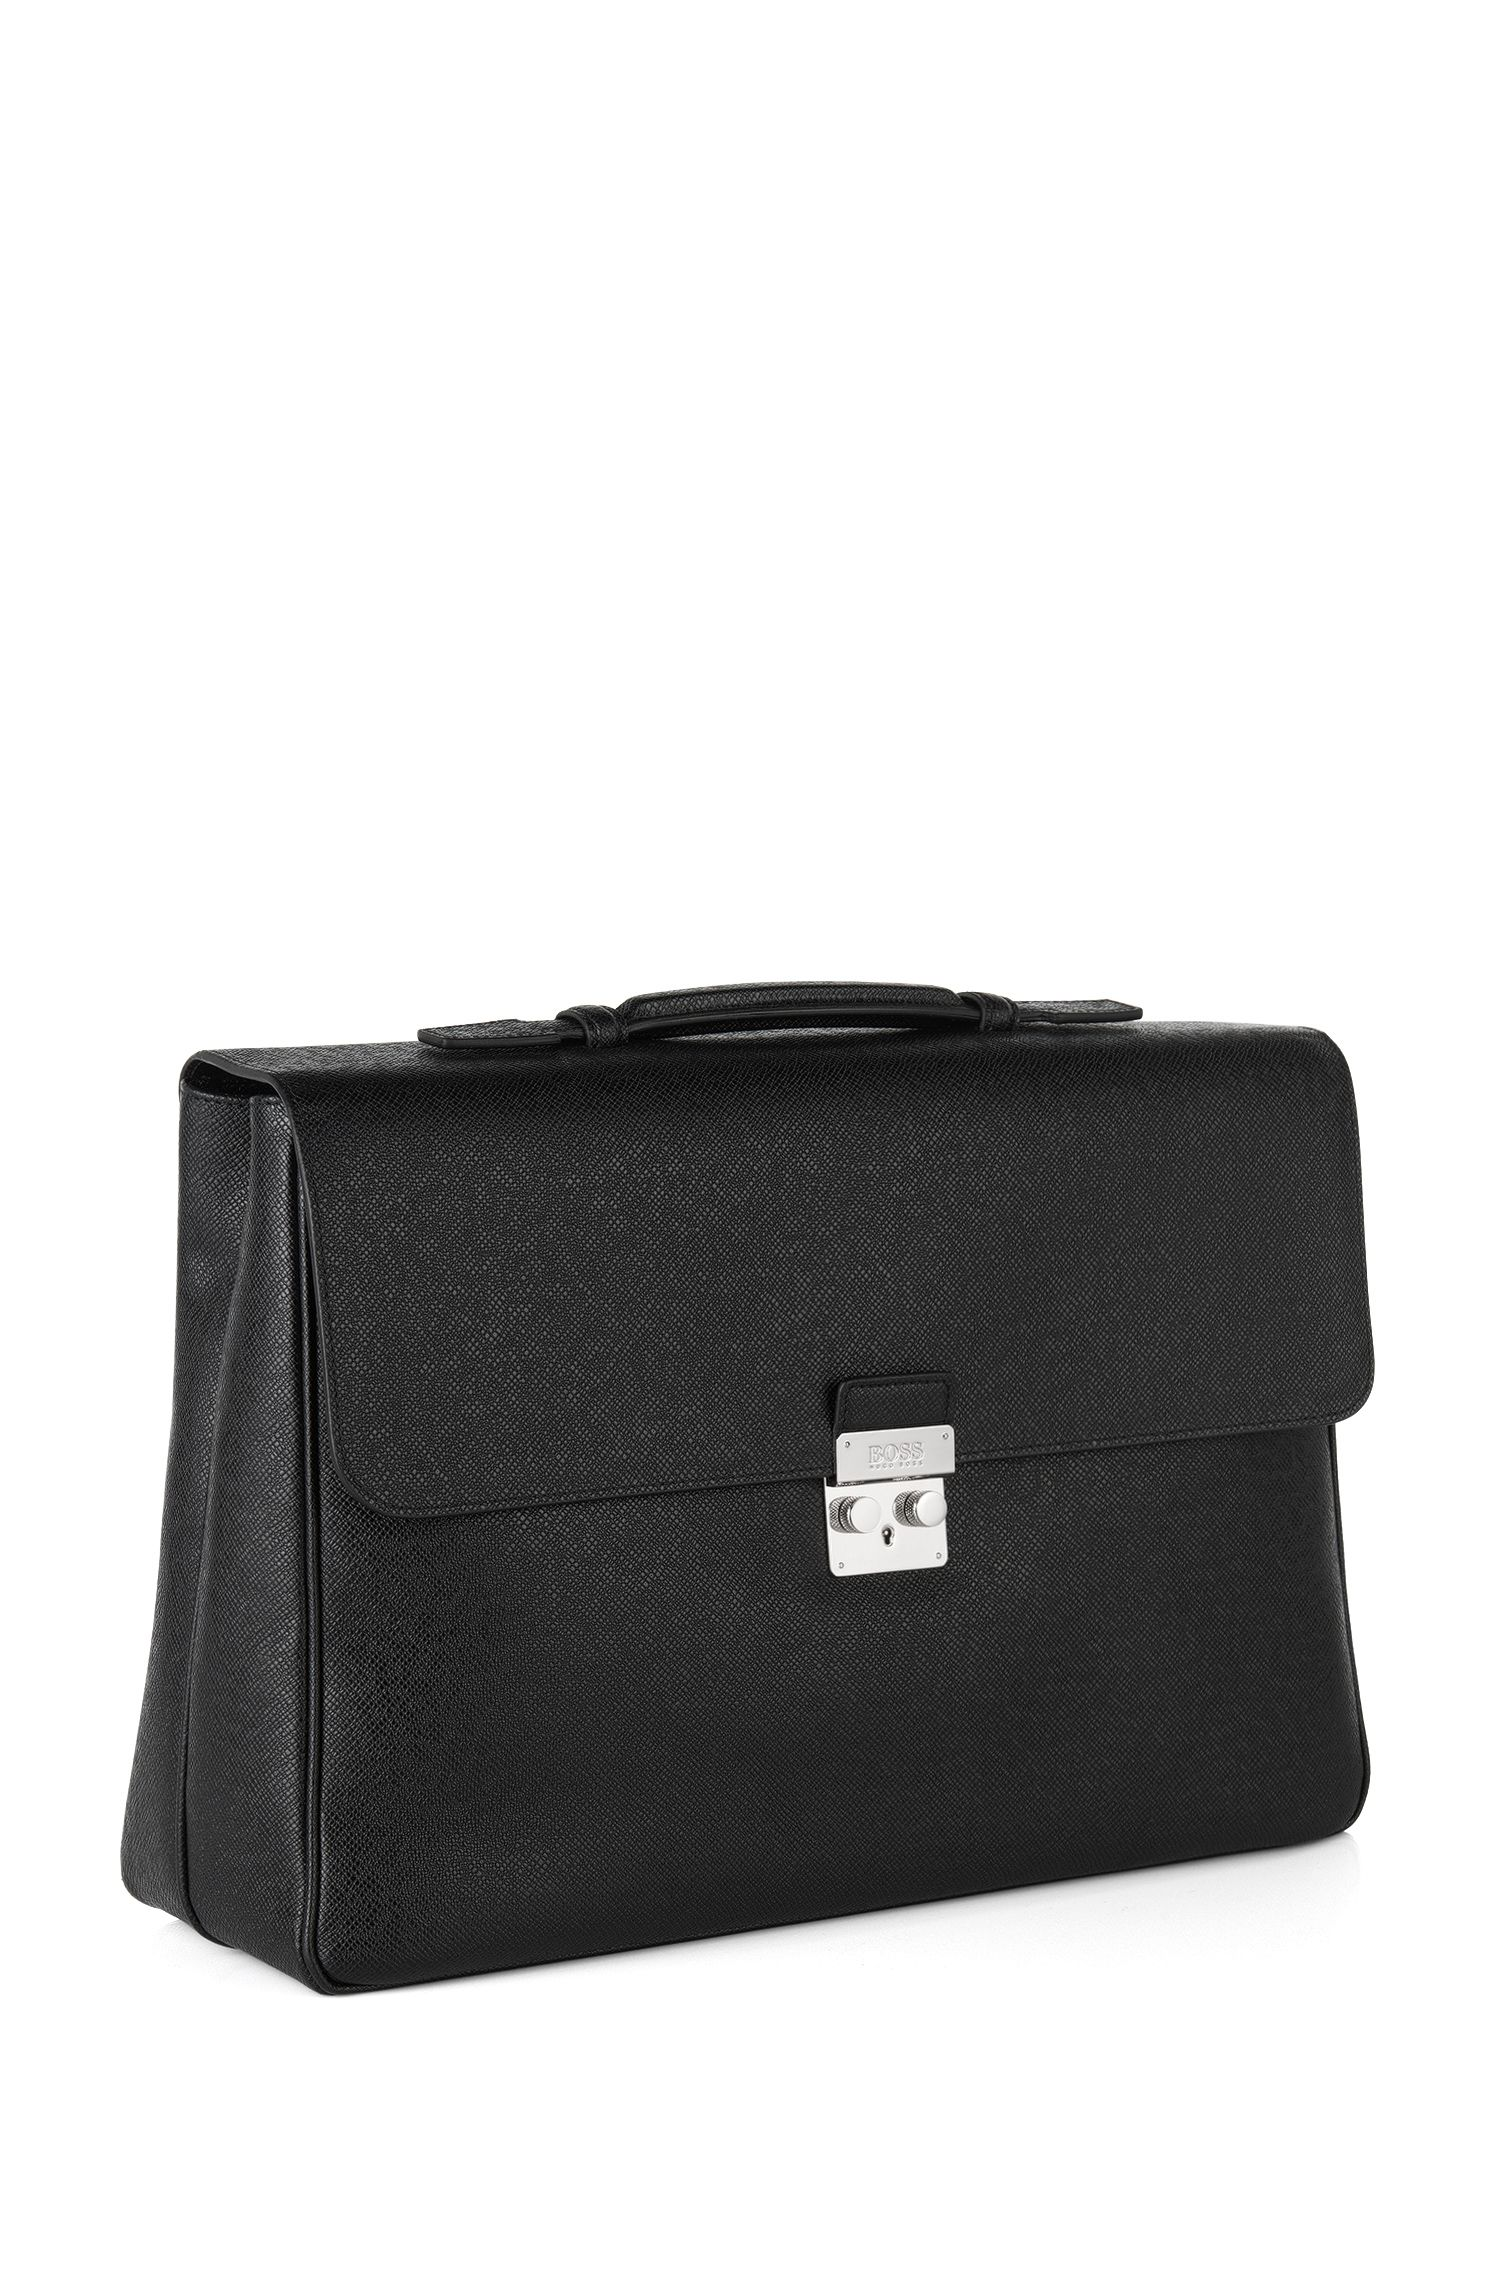 'Signature Briefcase' | Calfskin Attache Trolley Bag